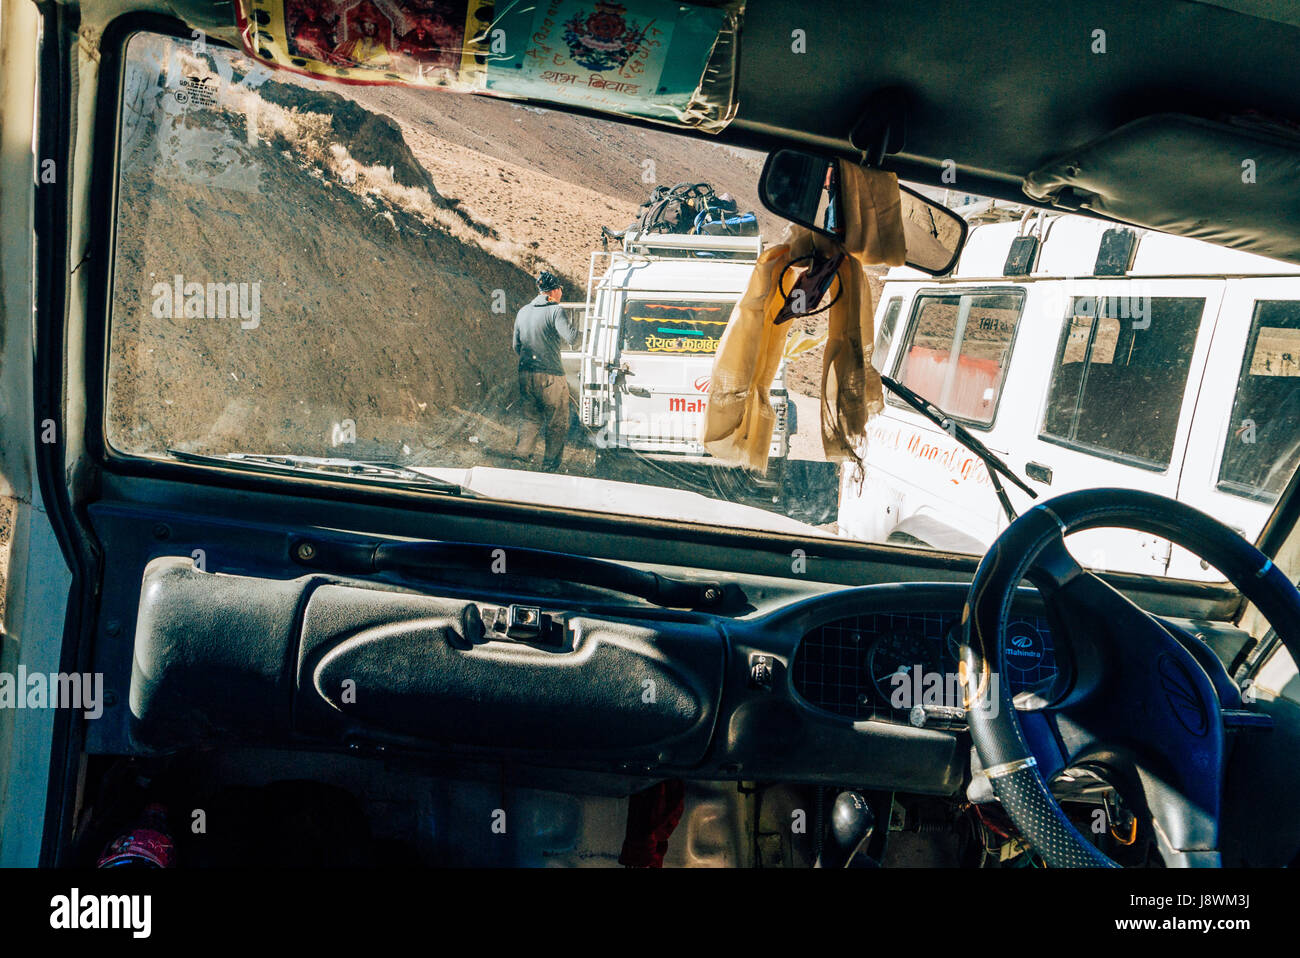 Convoy of jeeps along the rugged Himalayan mountains dirt road in Nepal. - Stock Image